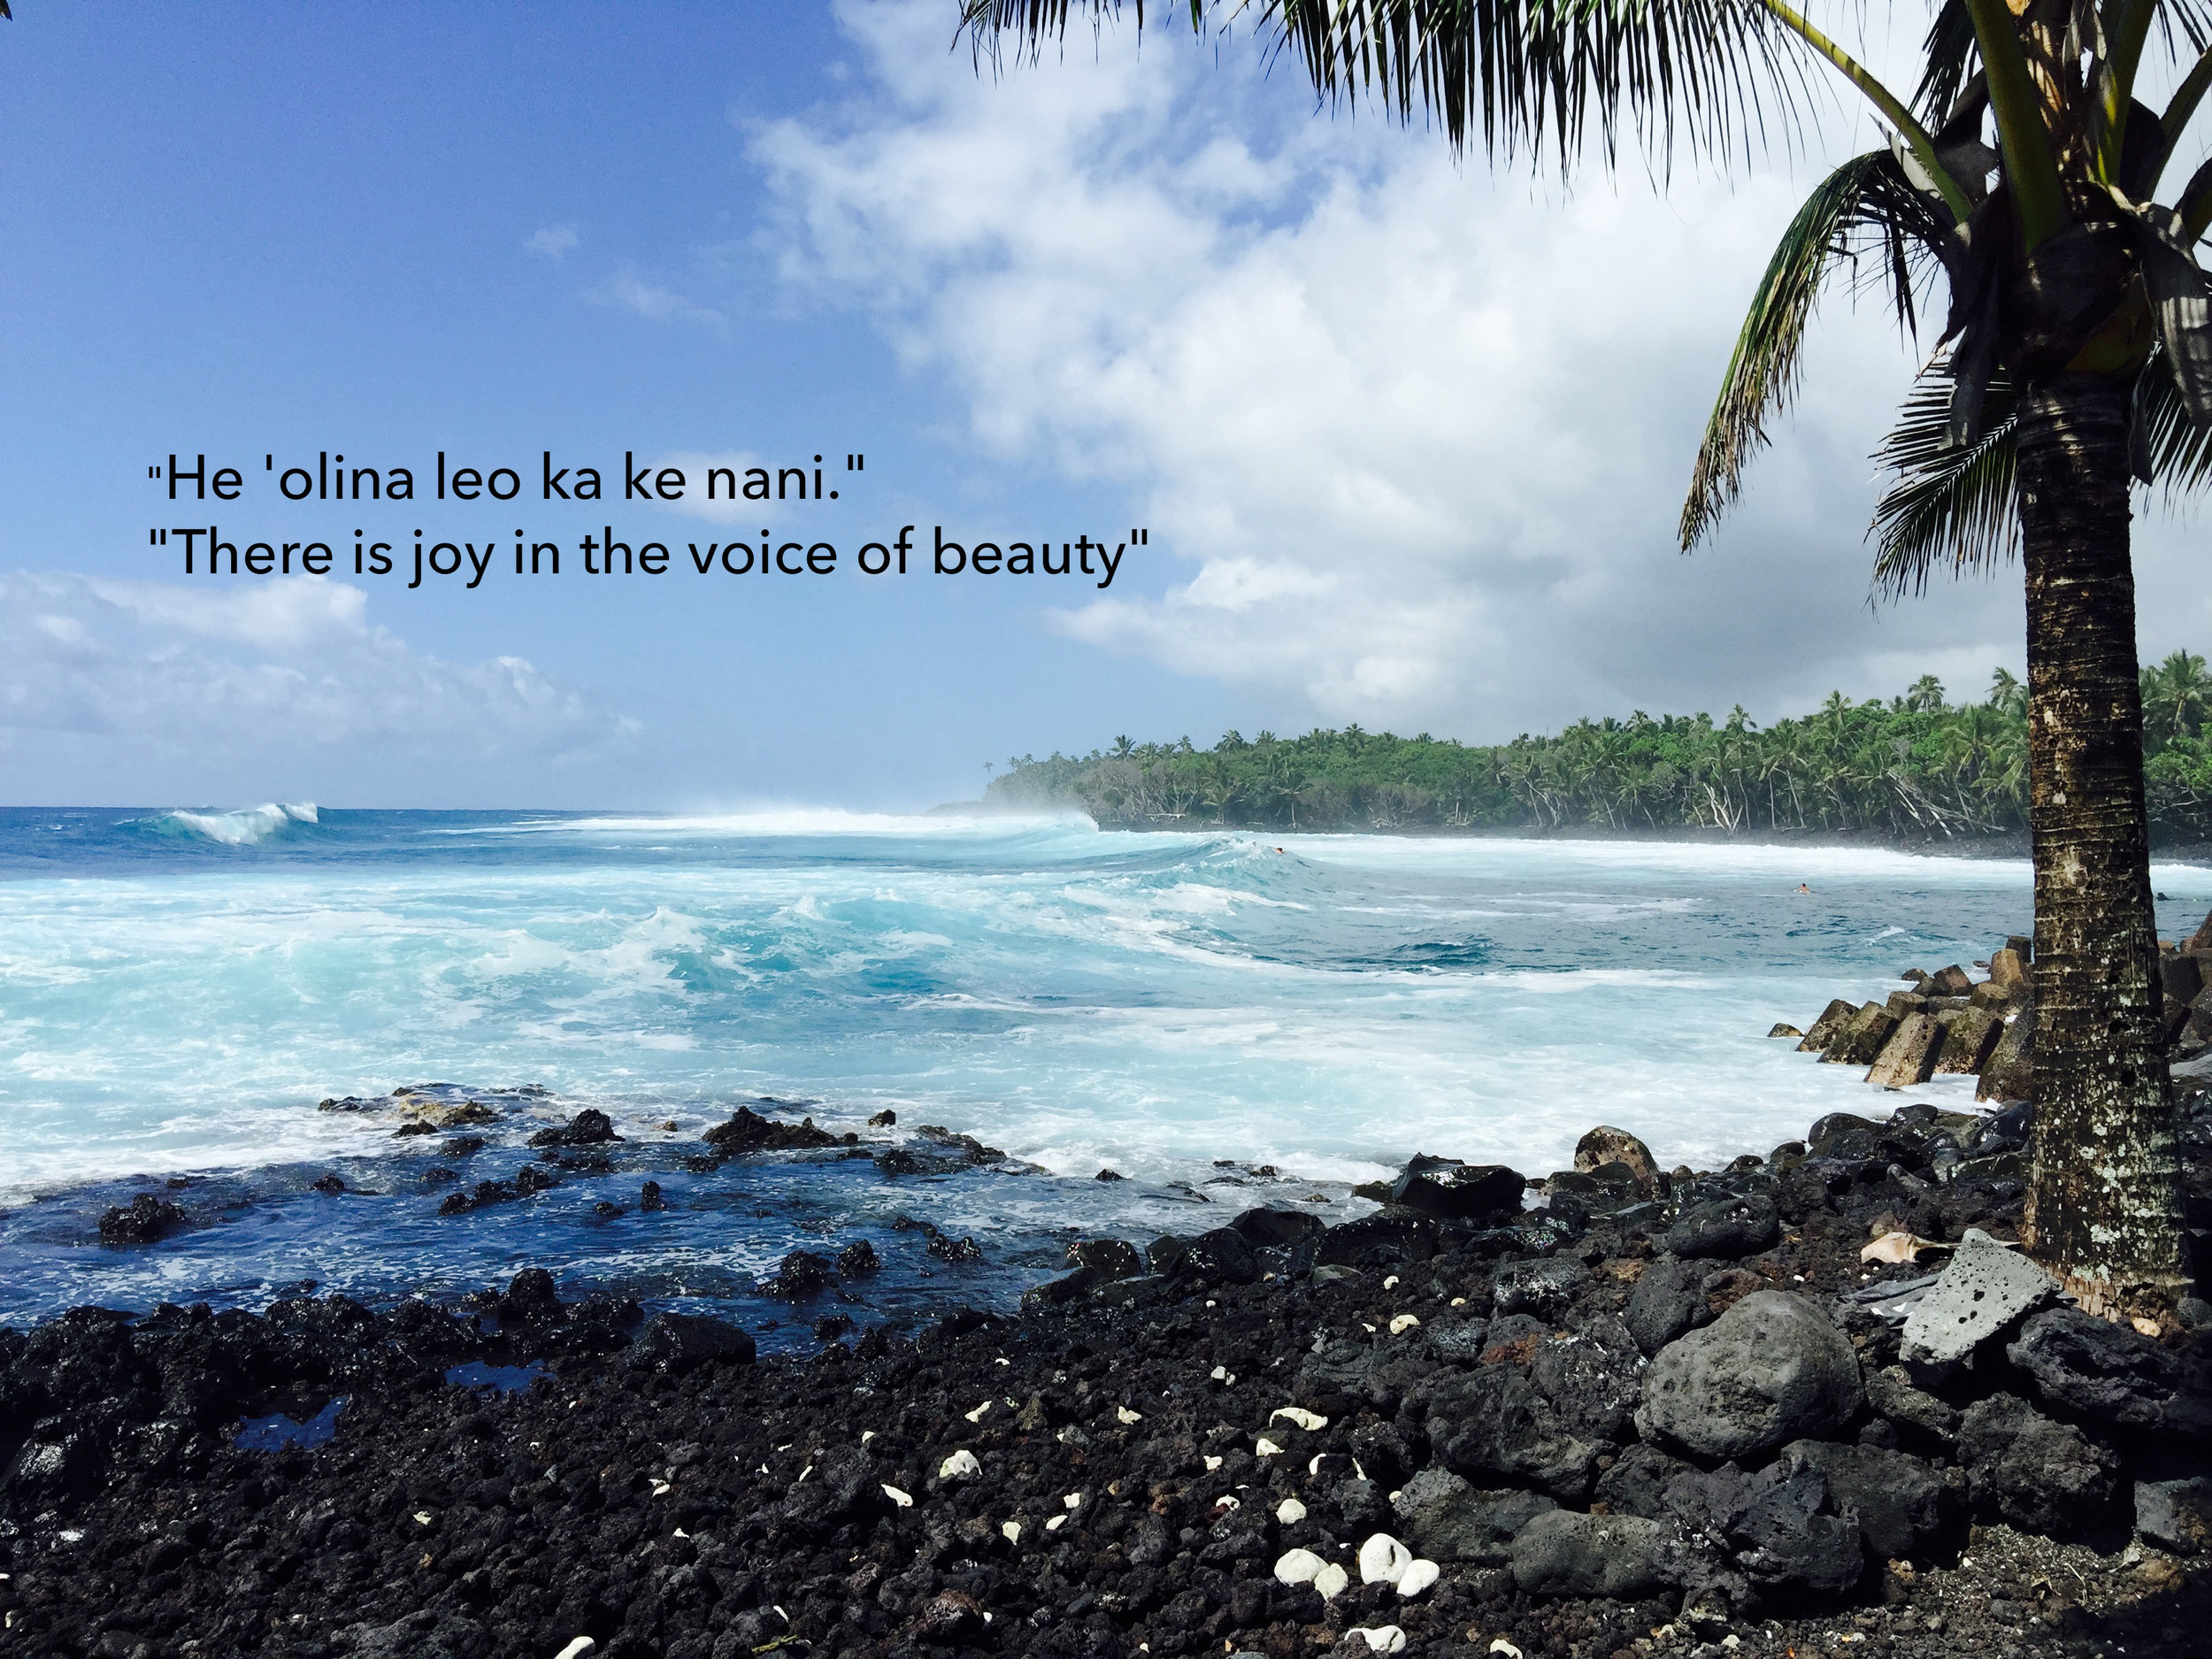 Home Page Ocean Pic with quote.jpg